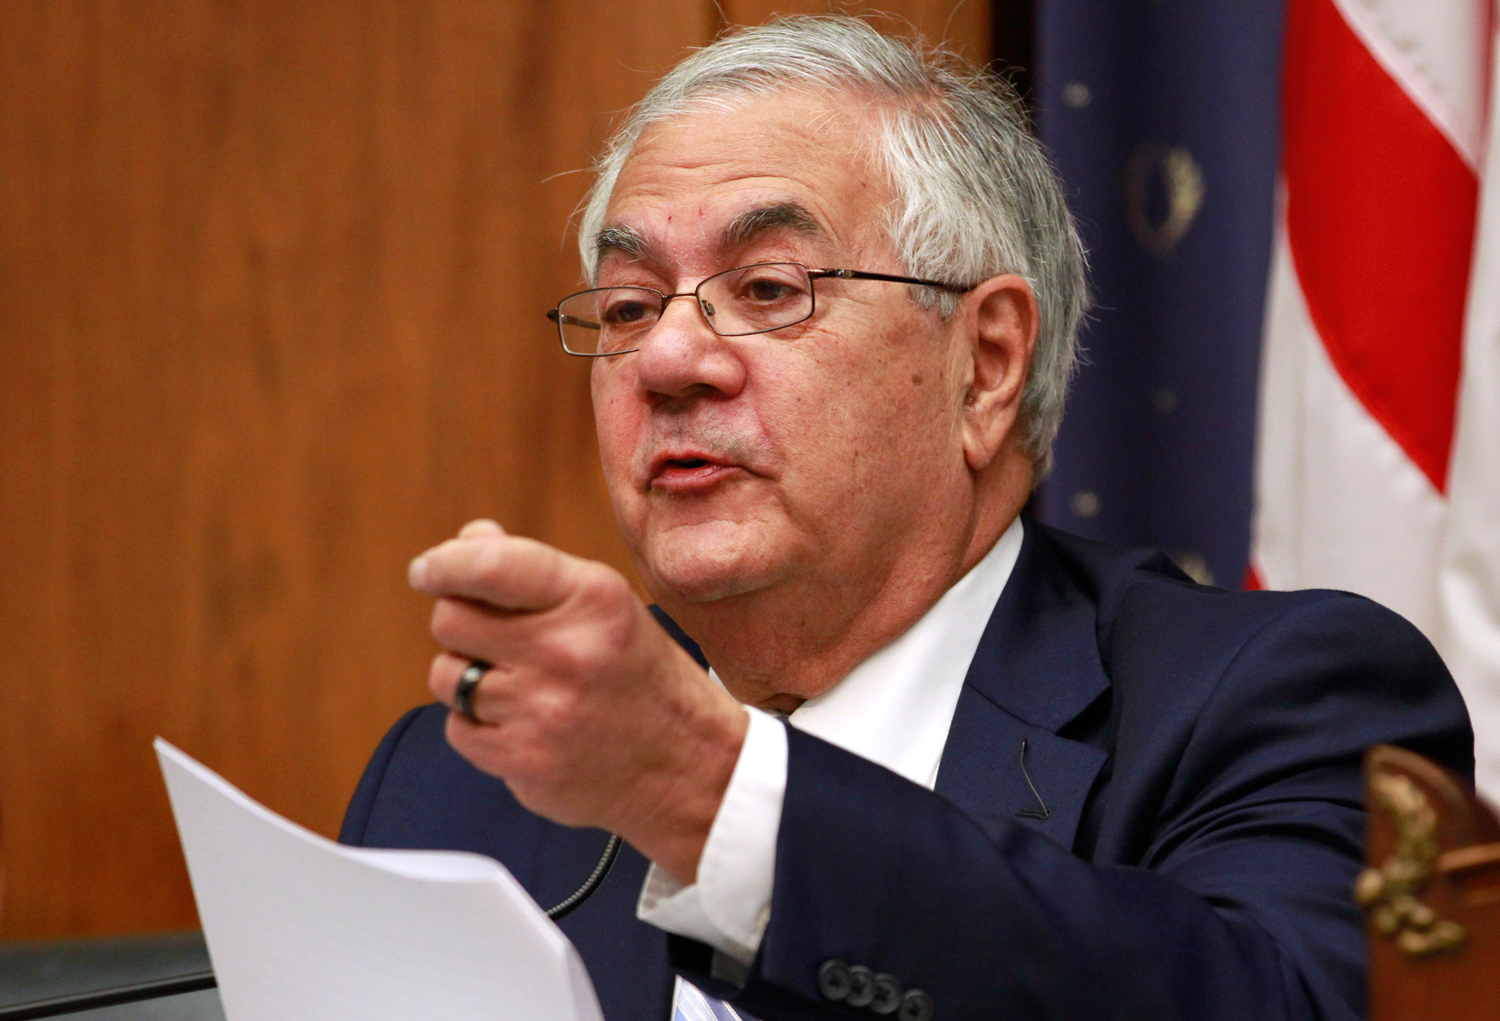 Rep. Barney Frank, D-Mass., asks a question of the first panel testifying before the House Financial Services Committee on Capitol Hill in Washington, on Tuesday, June 19, 2012.